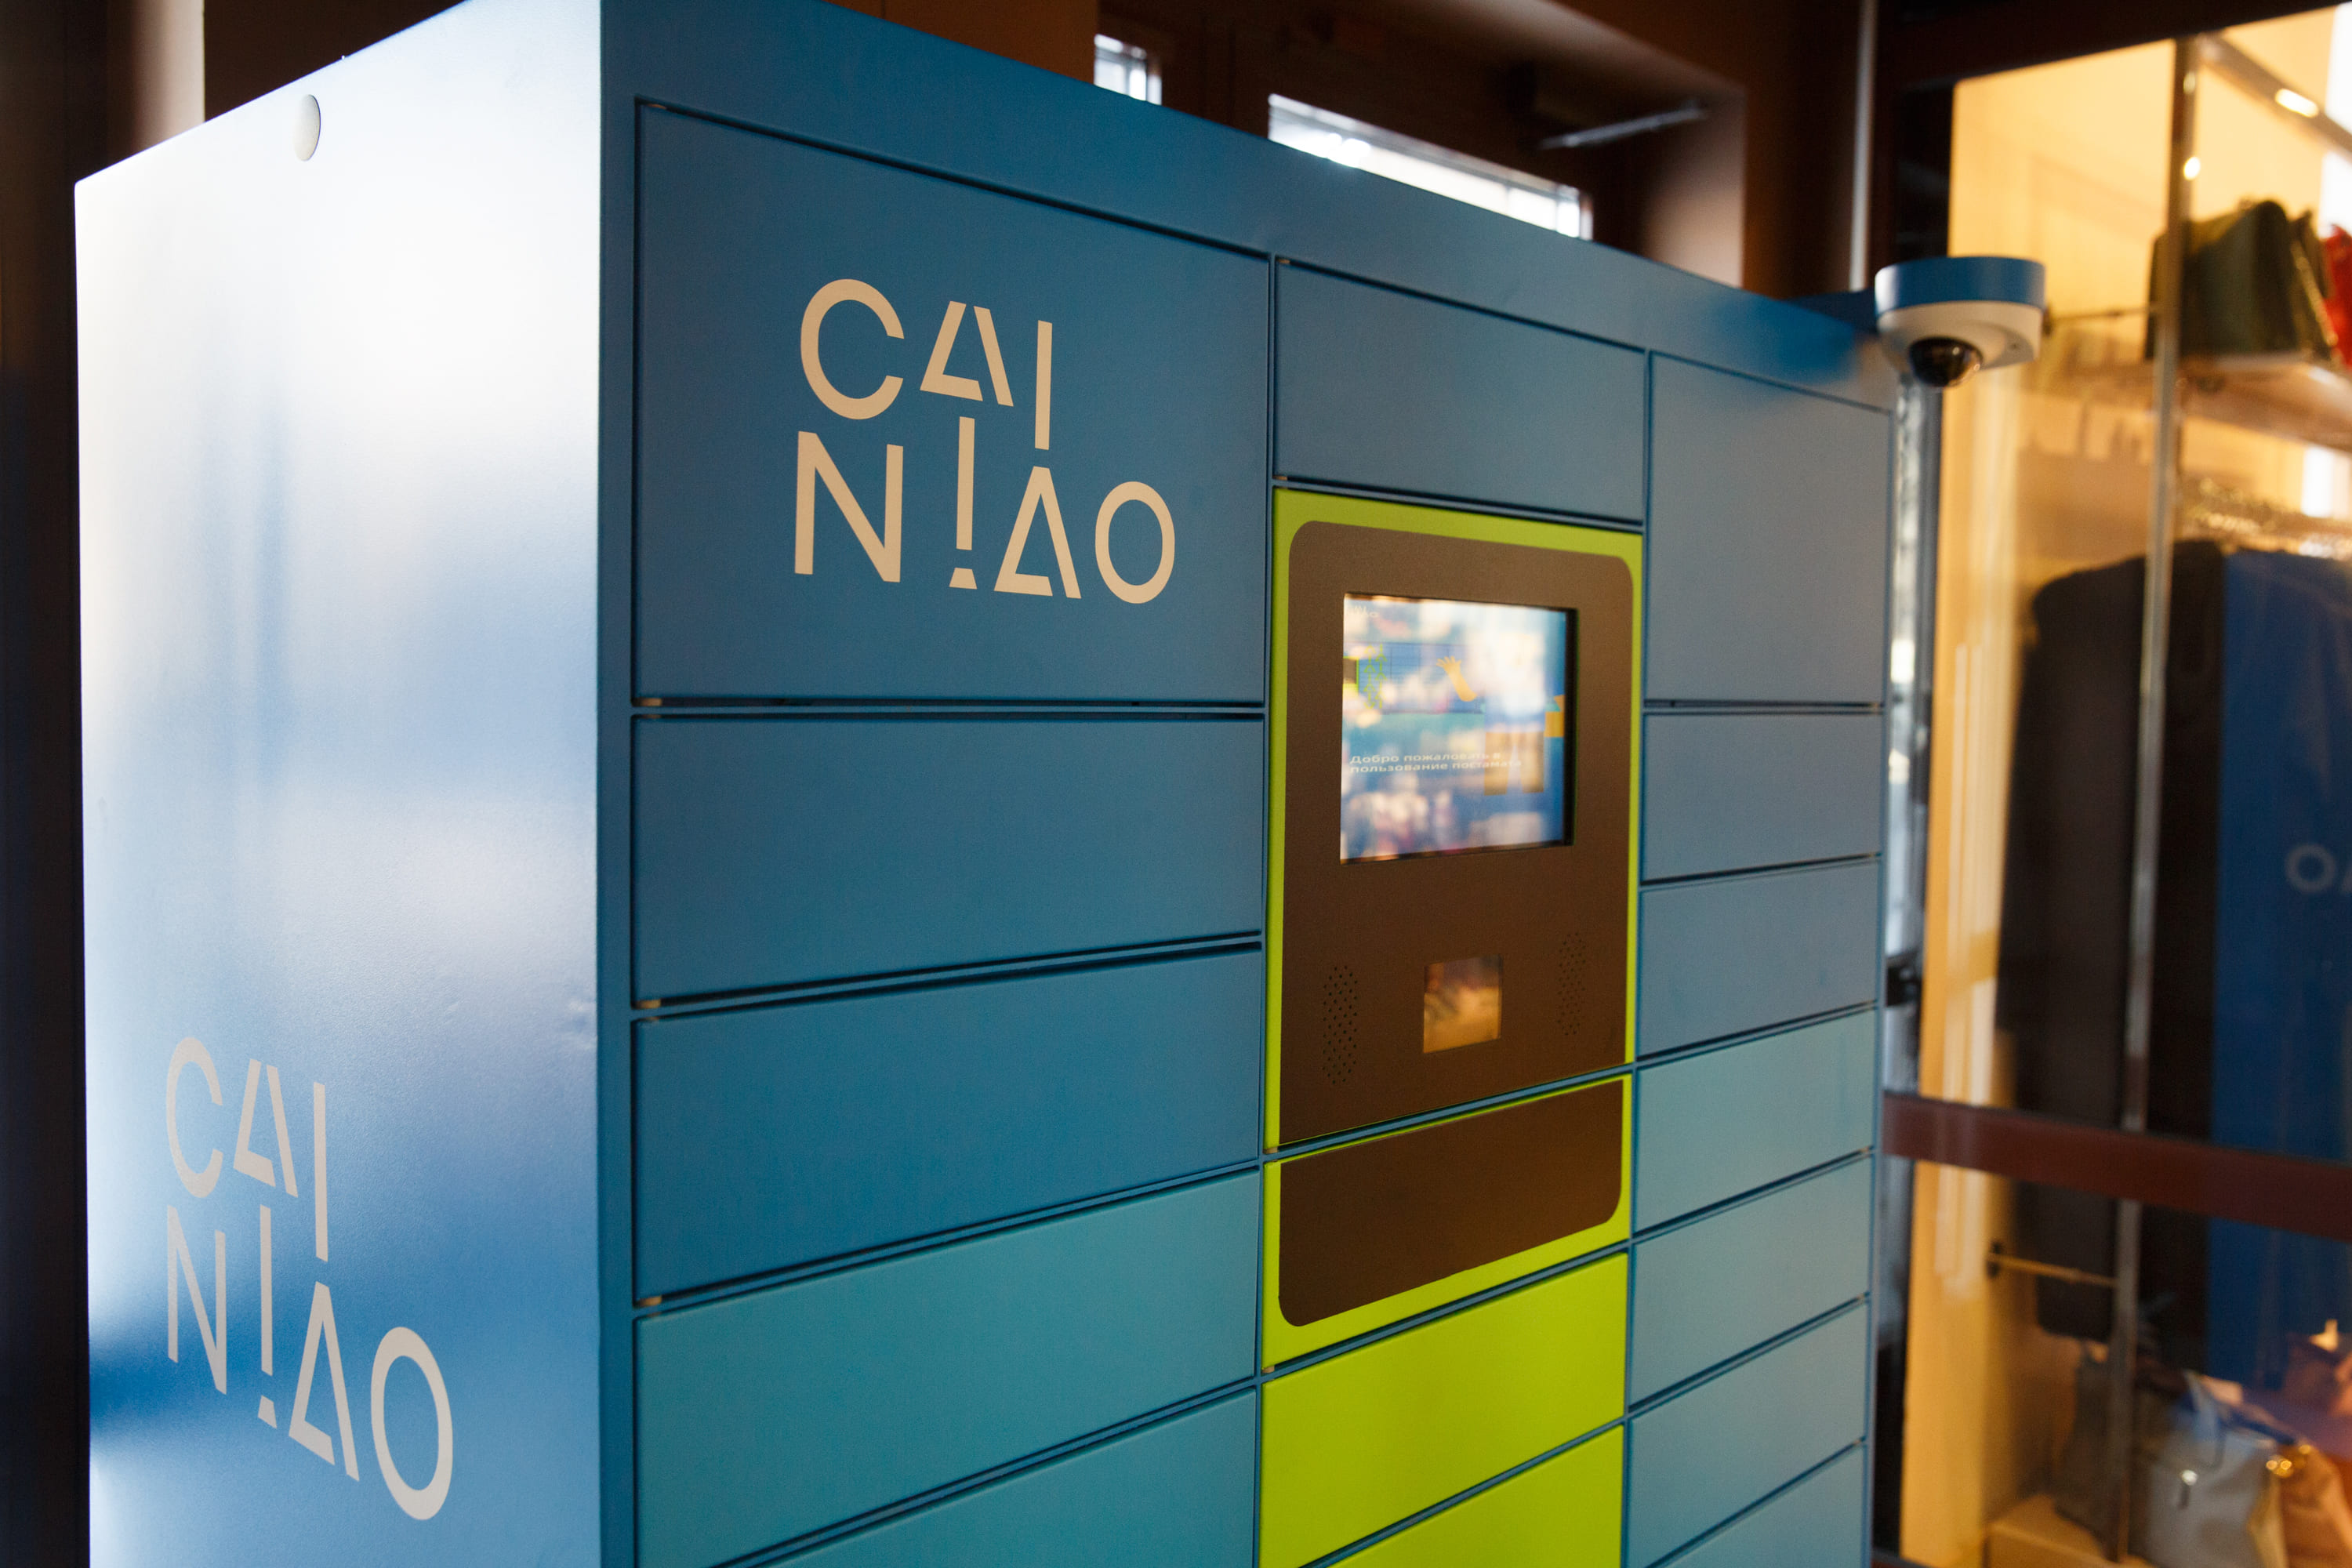 OR Group and Cainiao will cooperate in developing parcel terminals network